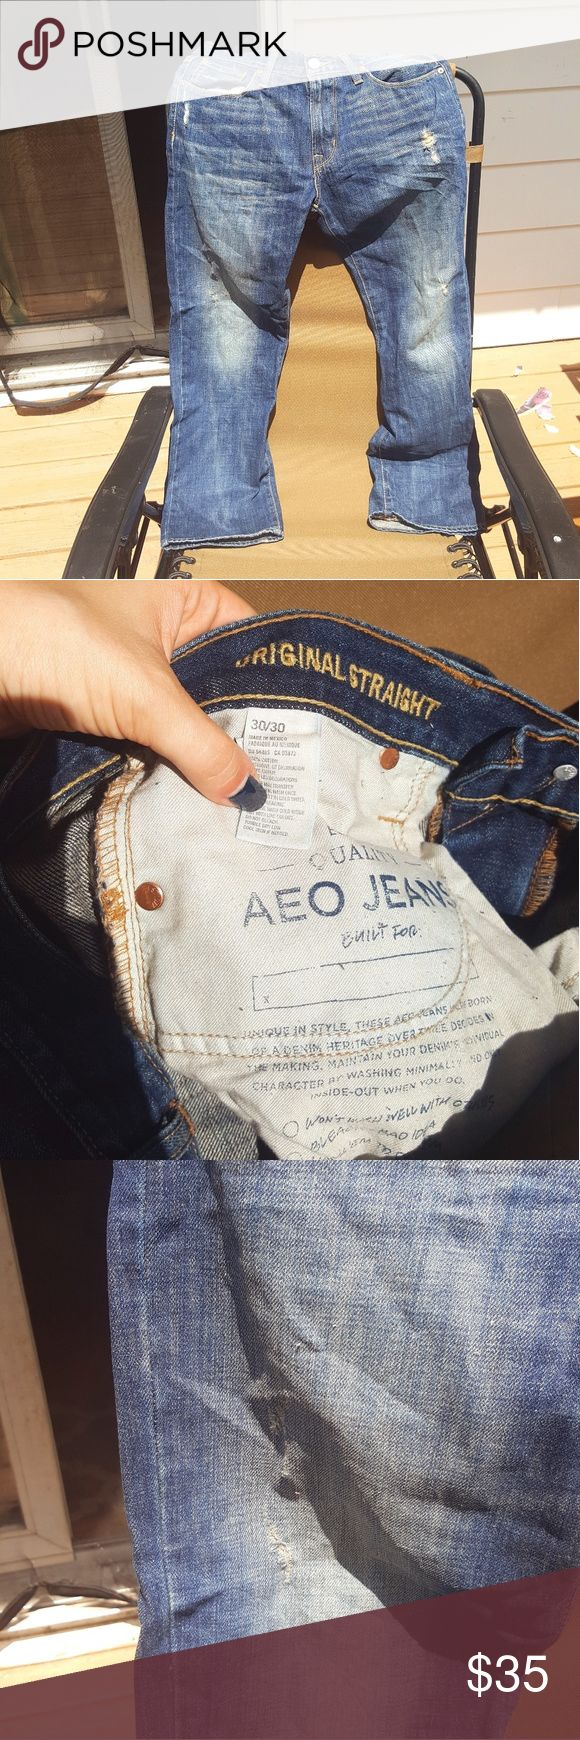 Men's American Eagle Original Straight jeans Size 30X30 distressed Straight cut jeans from AE Outfitters! These are NWOT, my husband did not like the tighter fit. They came originally distressed from the company. Excellent condition, never washed.  From a smoke-free home 🚭 Bundle items to save! 💰 American Eagle Outfitters Jeans Straight